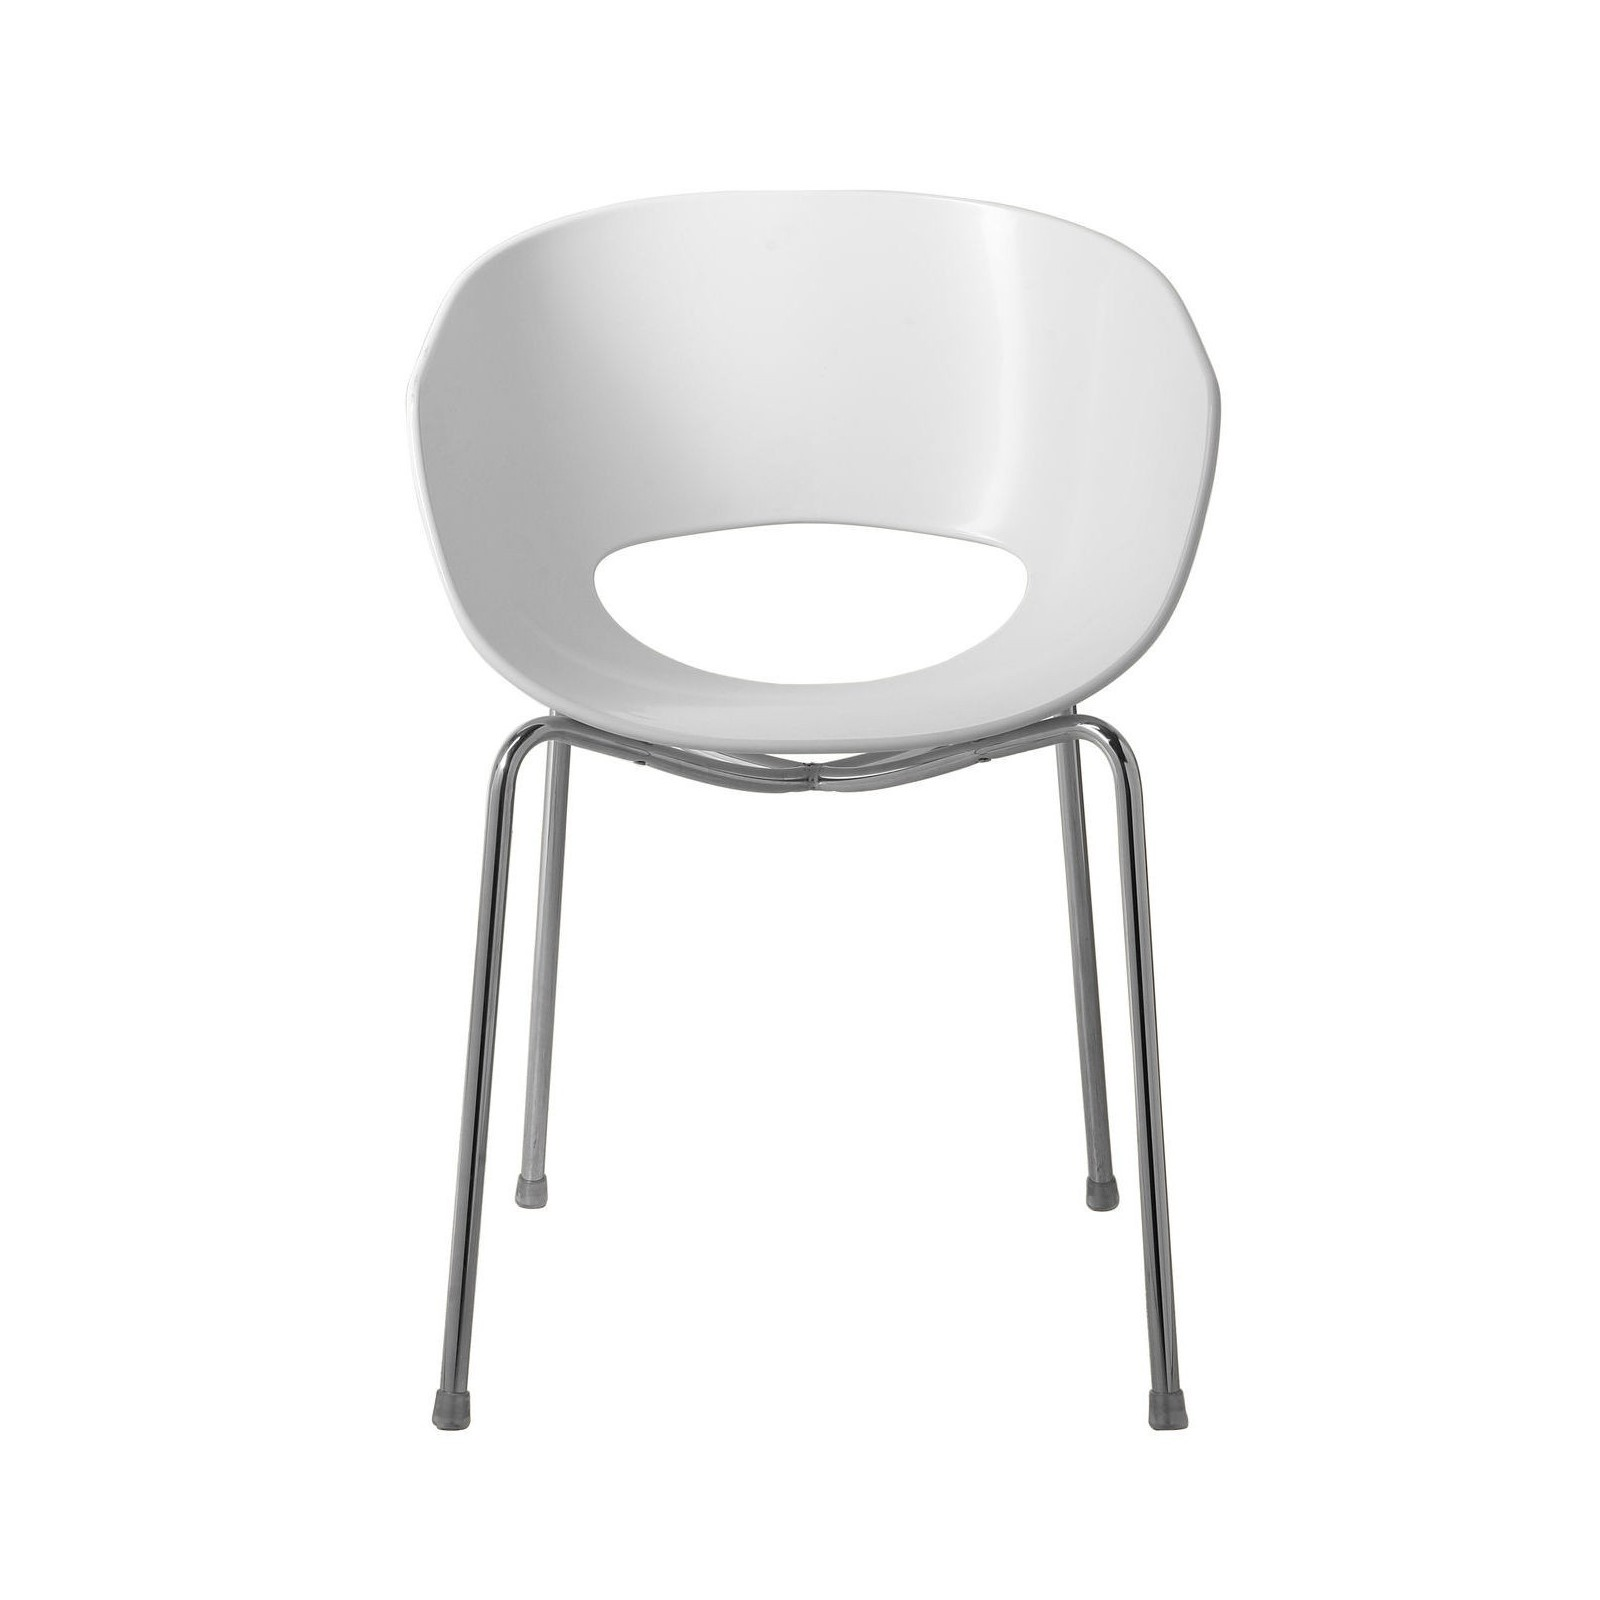 Chaise design eggshell blanche kare design for Chaise design blanche